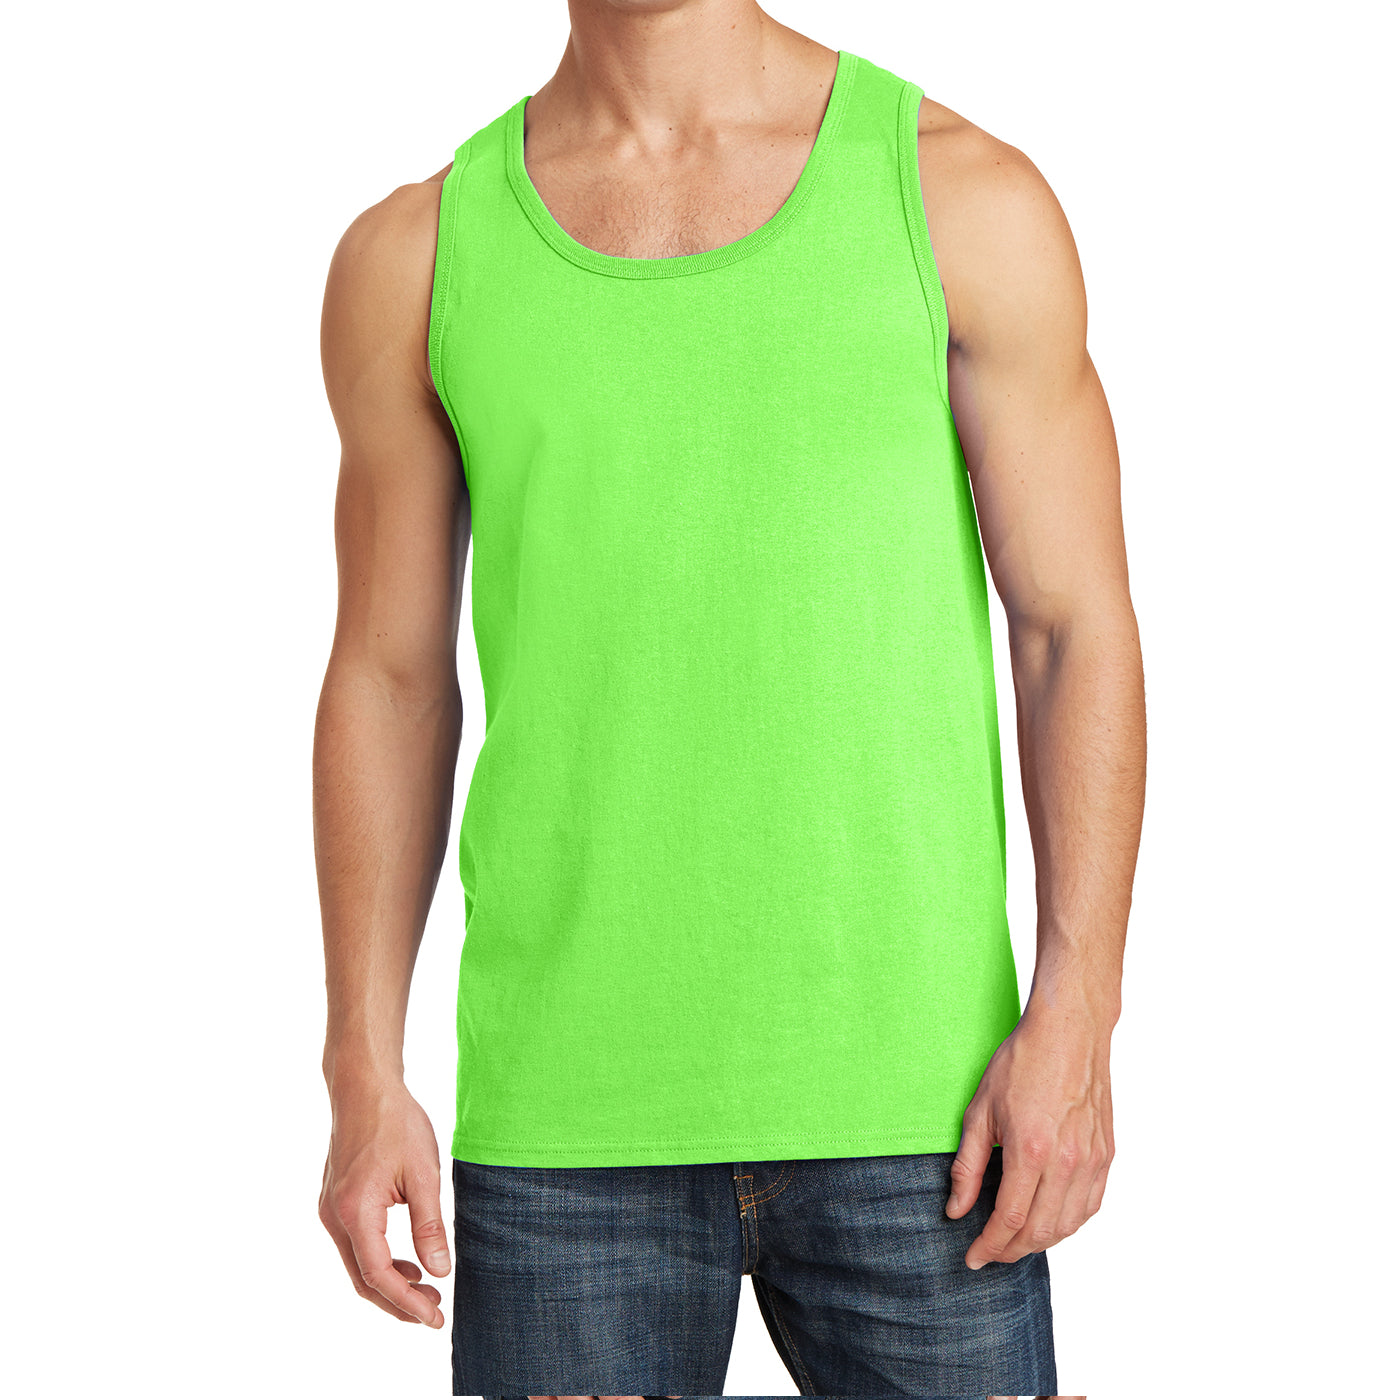 Men's Core Cotton Tank Top - Neon Green - Front